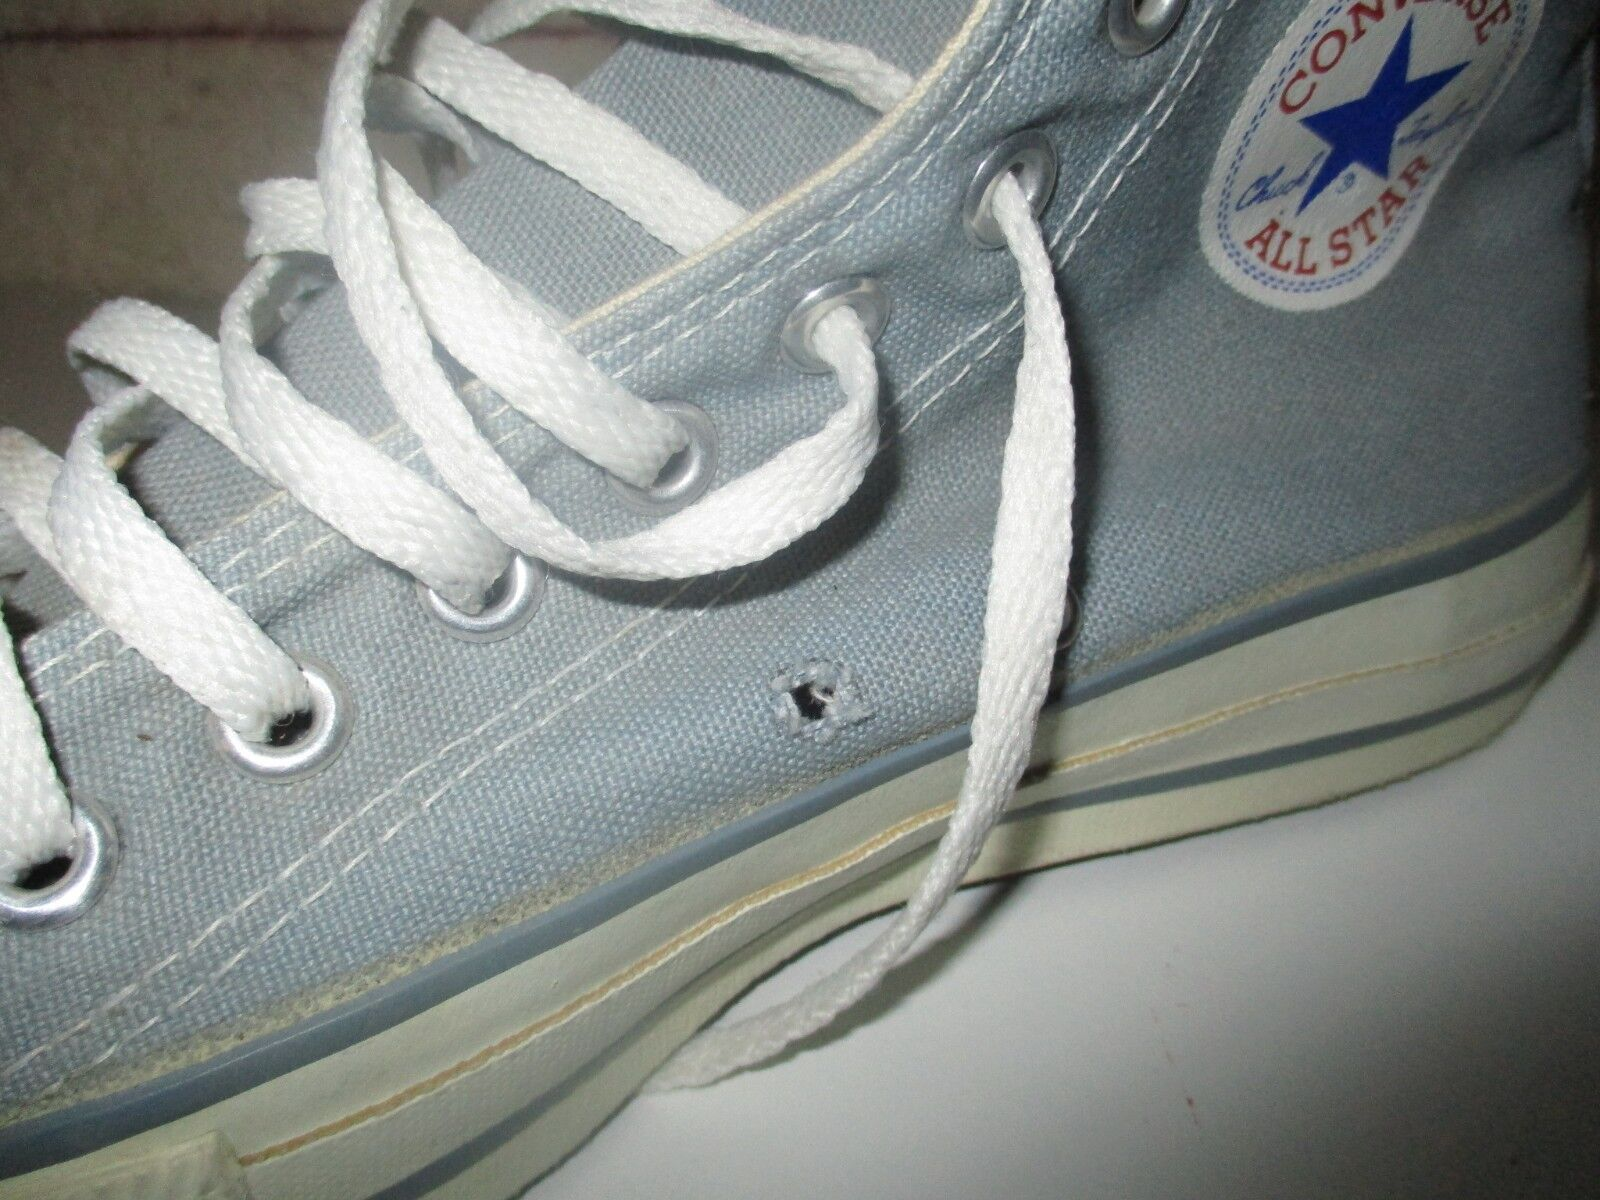 CONVERSE ALL-STAR bleu rare 80's vintage Made in USA collector 80's rare USA 7,5 7 1/2 41 ecb103